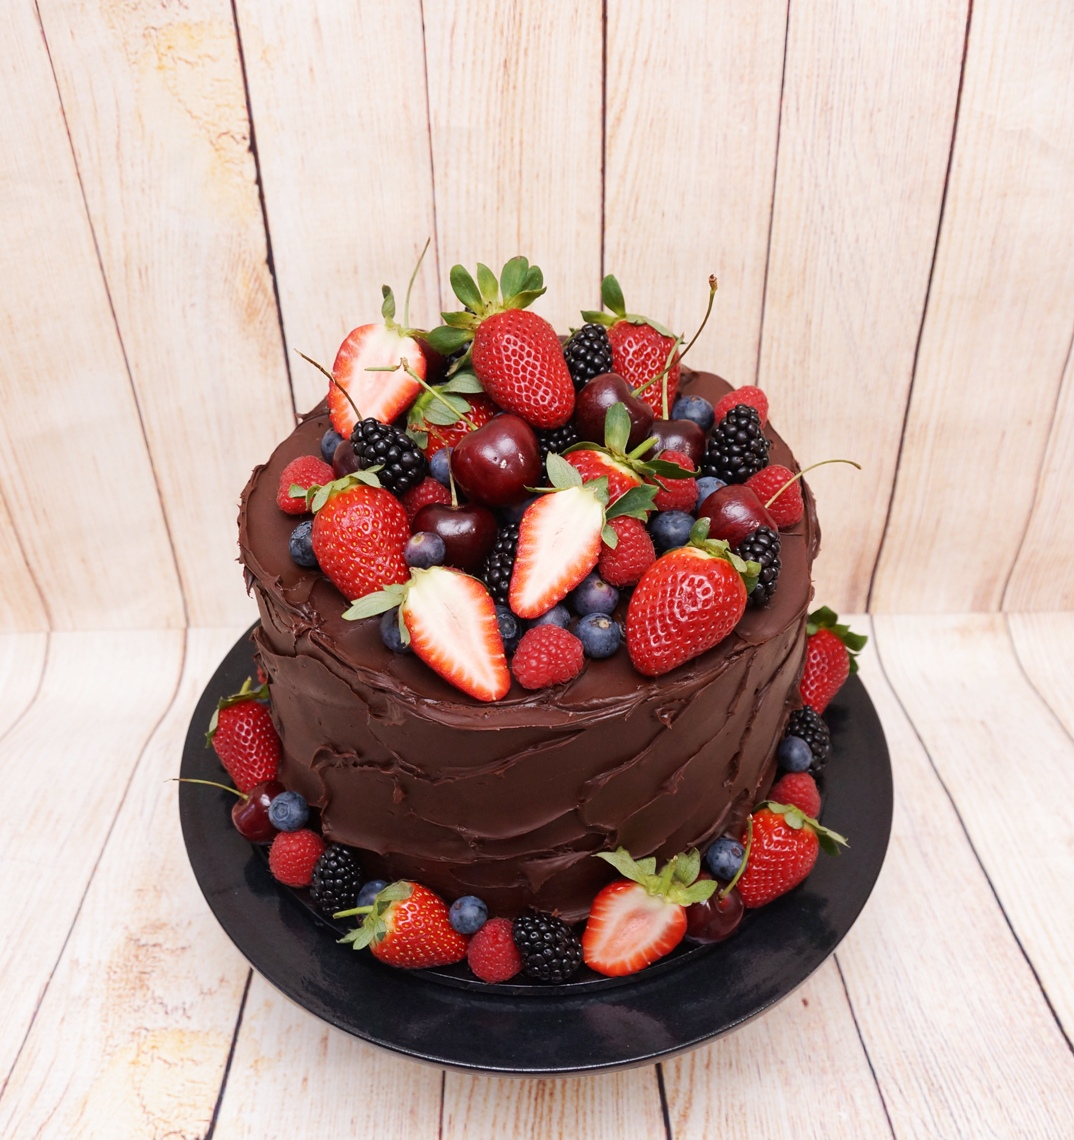 Chocolate ganache with fresh berries 2